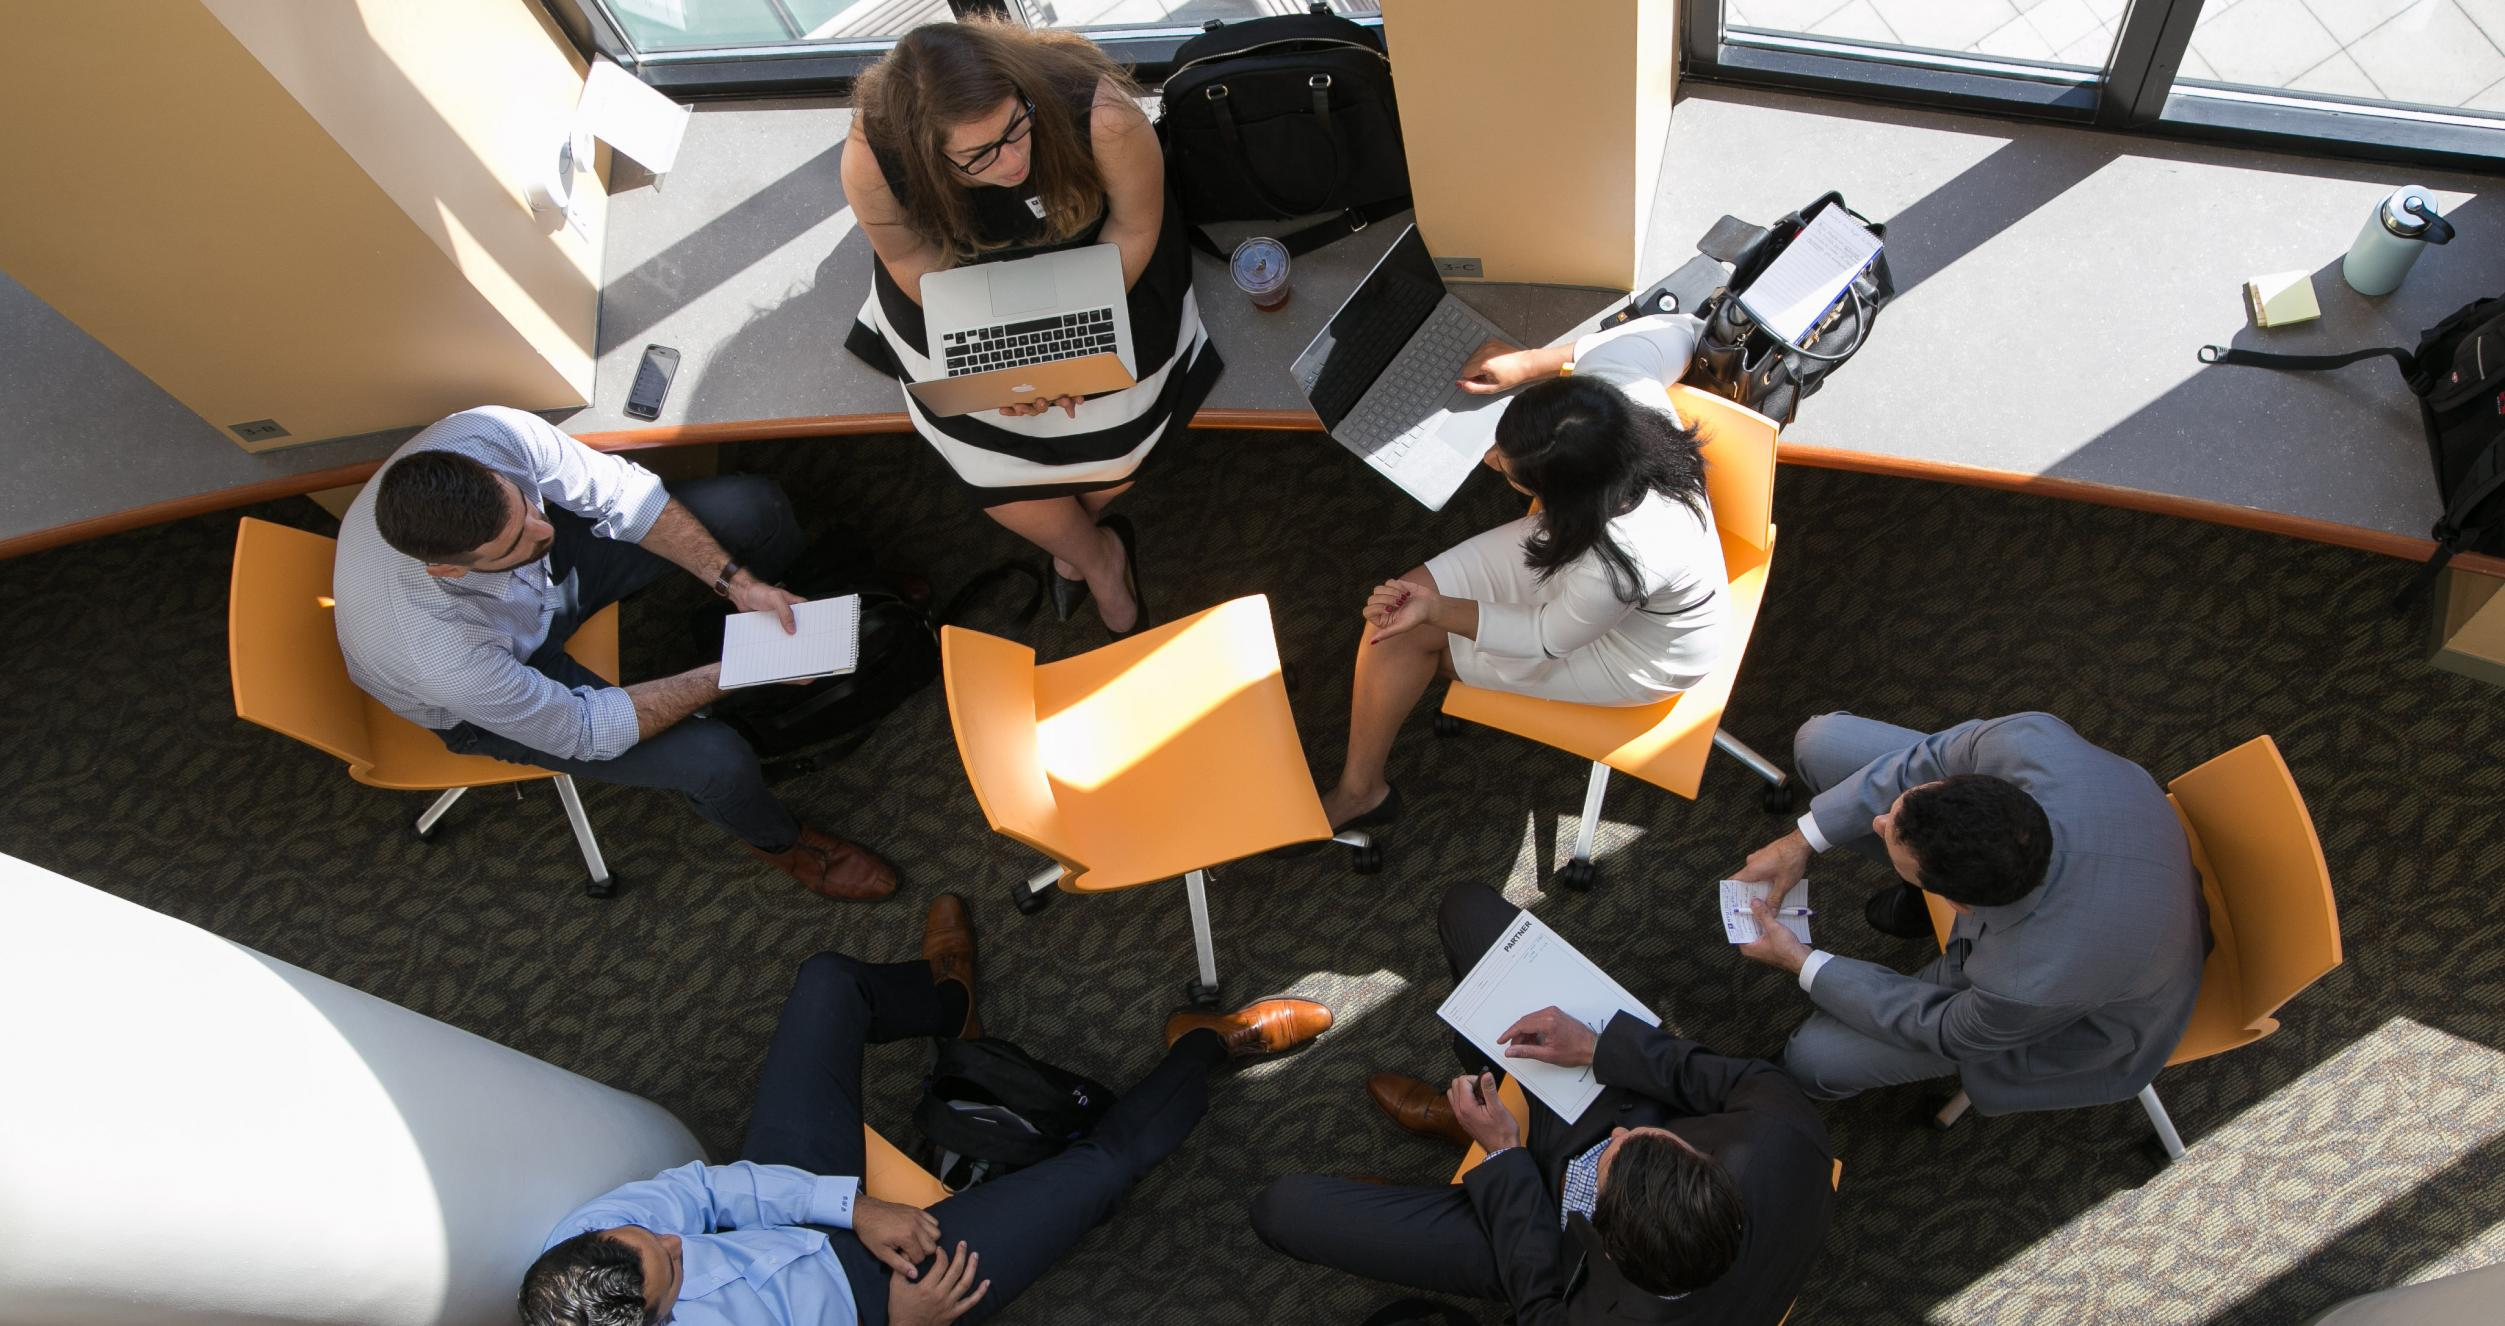 Photo from above of six students working